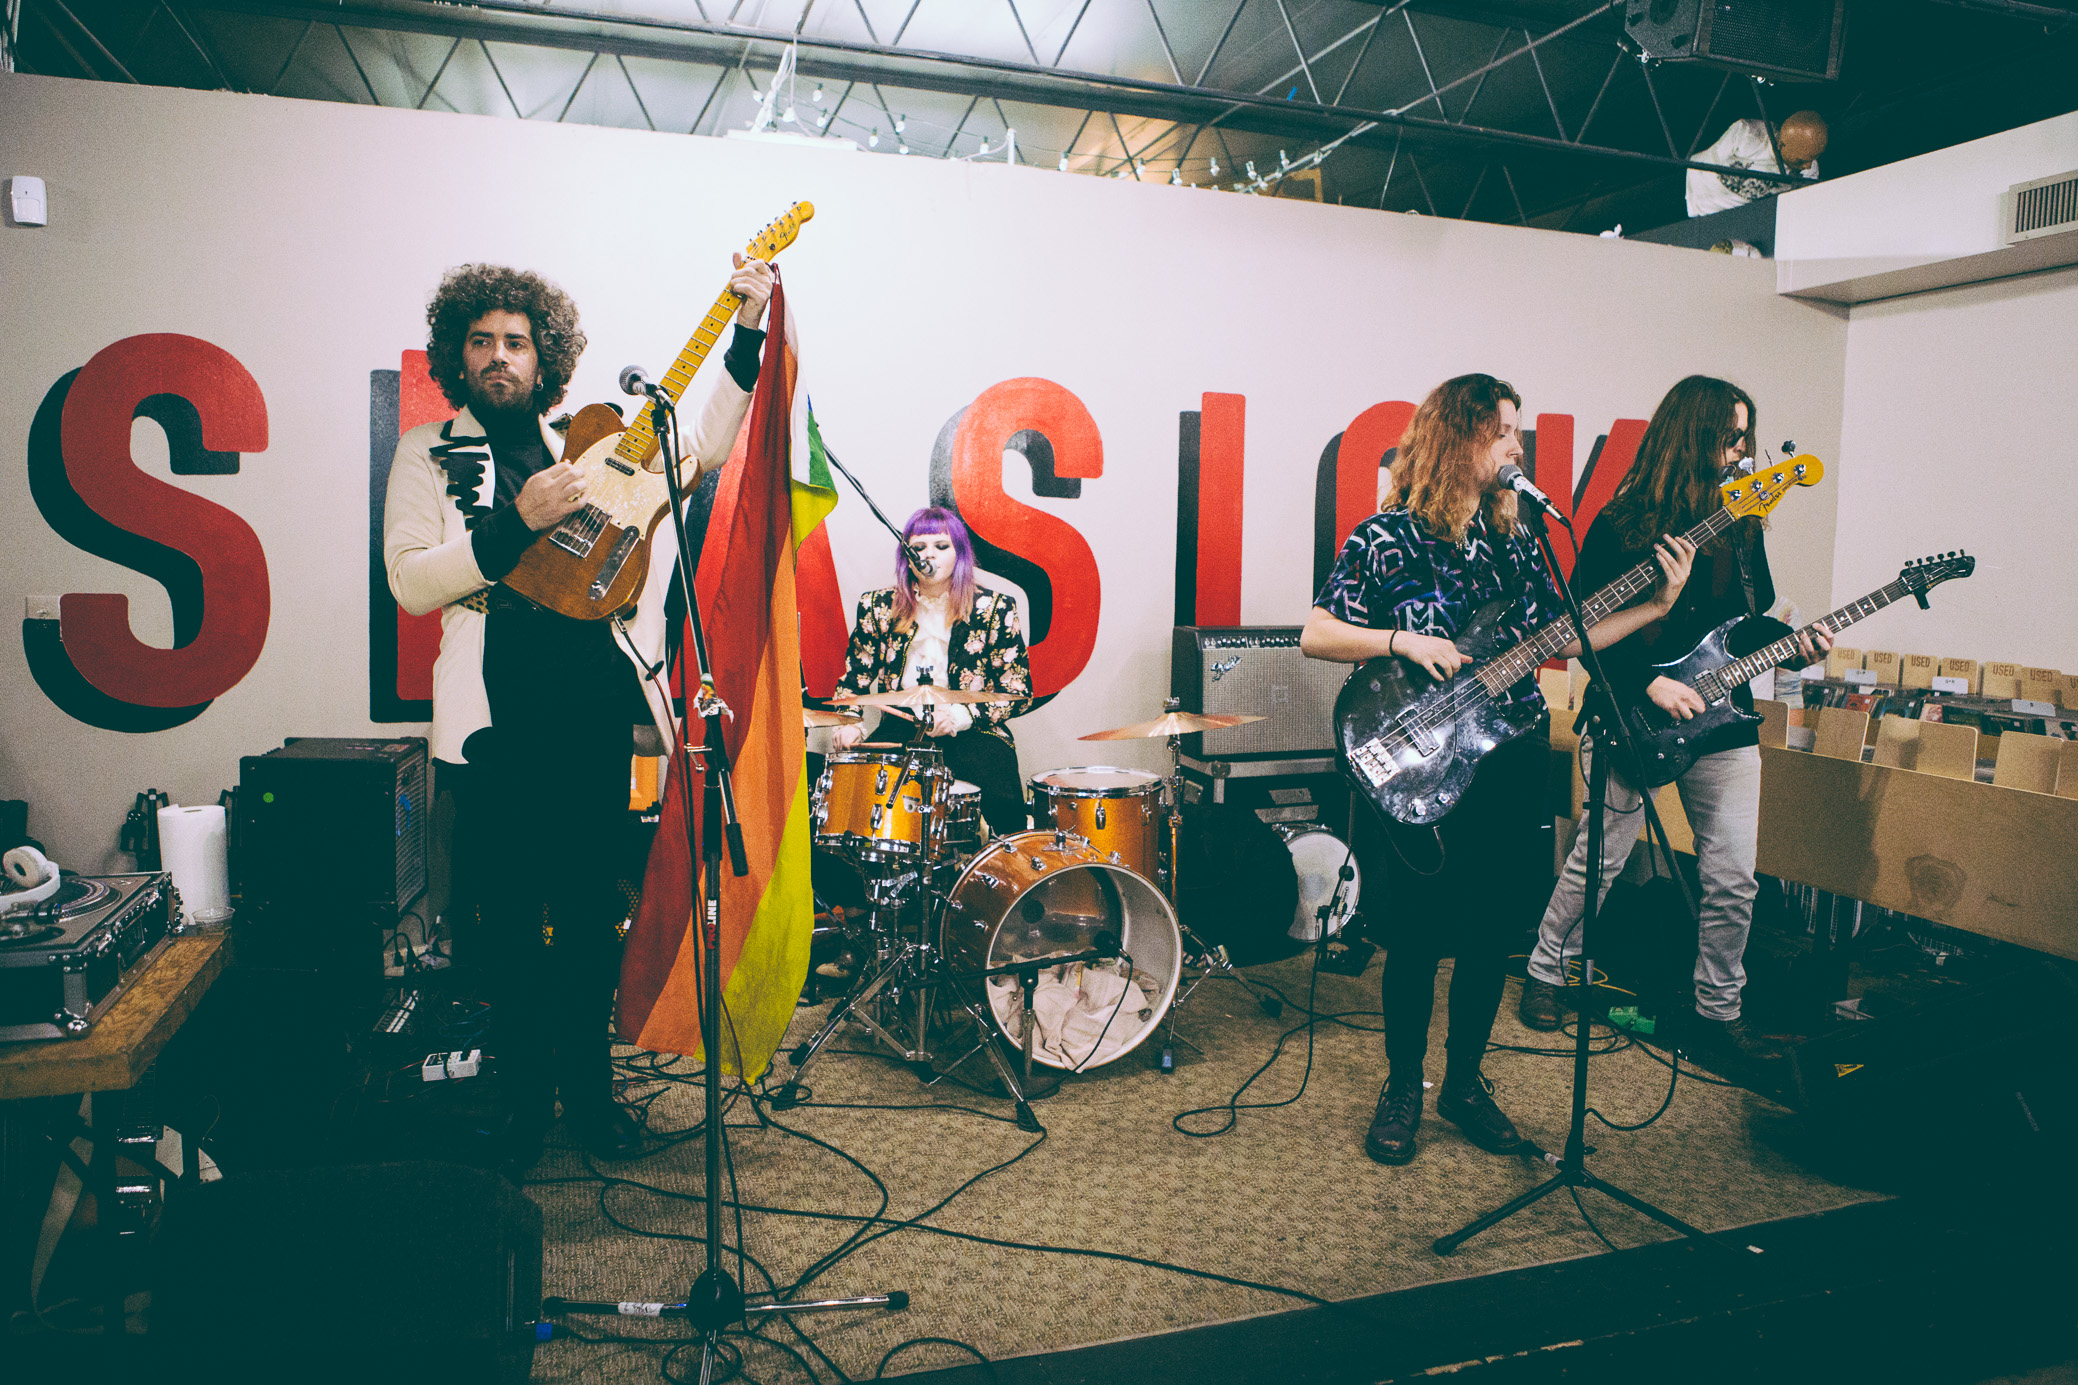 The Old Paints perform in concert at Seasick Records in Birmingham, Alabama on March 4th, 2018. (Photo by David A. Smith/DSmithScenes)